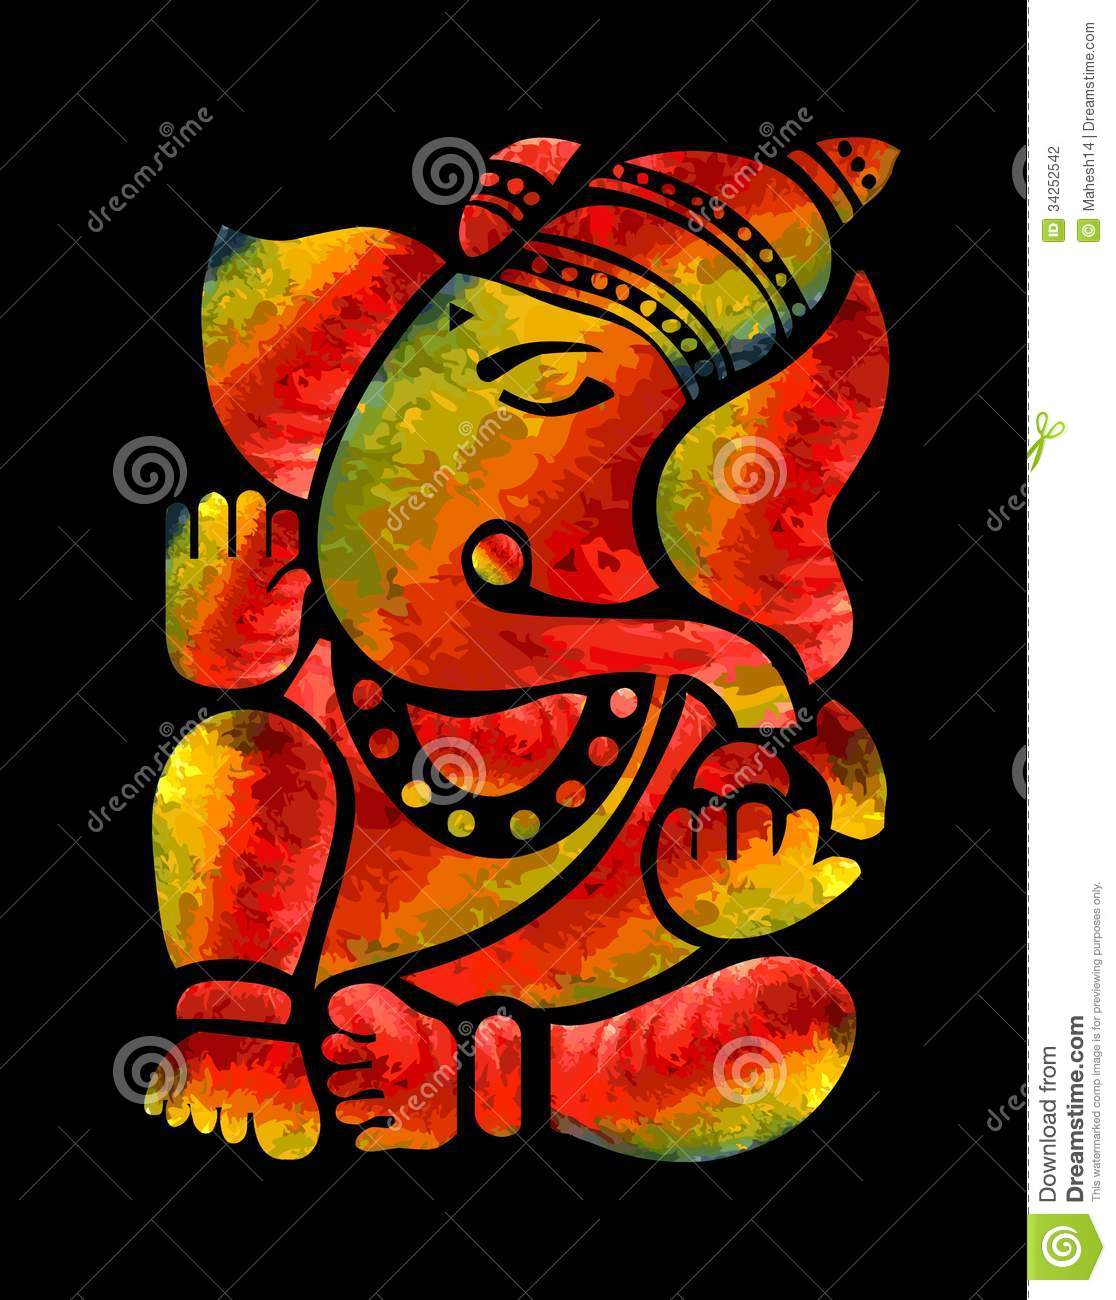 Lord ganesha multi color painting hd image - Ganesha God Hindu Multicolor Painting